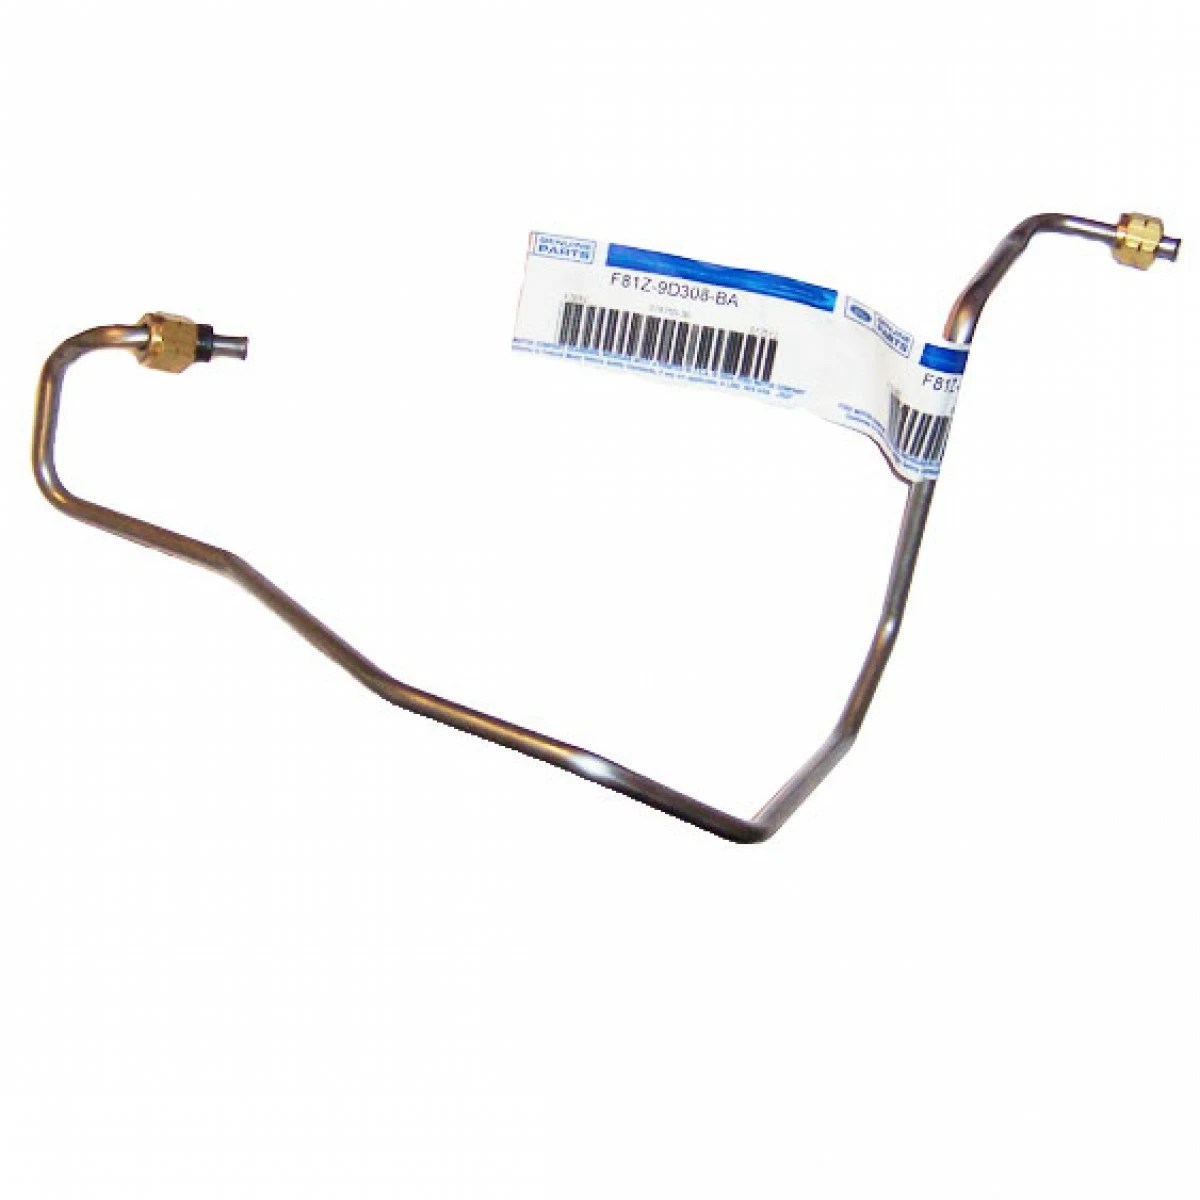 Oem Ford Drivers Side Fuel Line For 99 03 7 3l Powerstroke